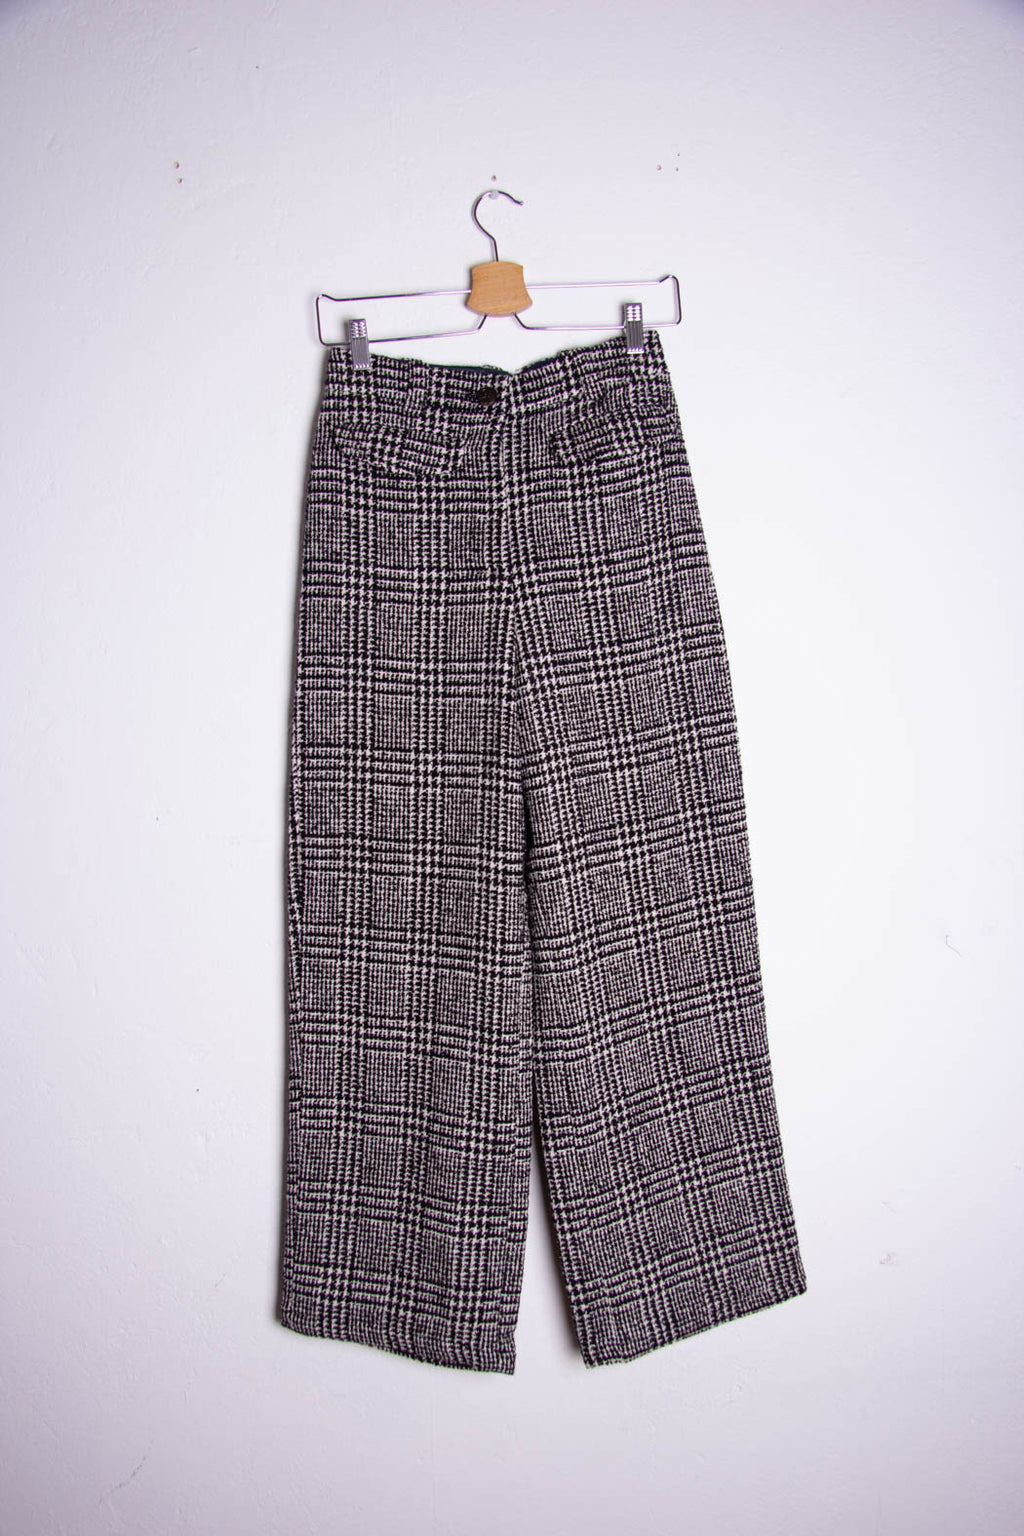 Pipe Trousers (women's)